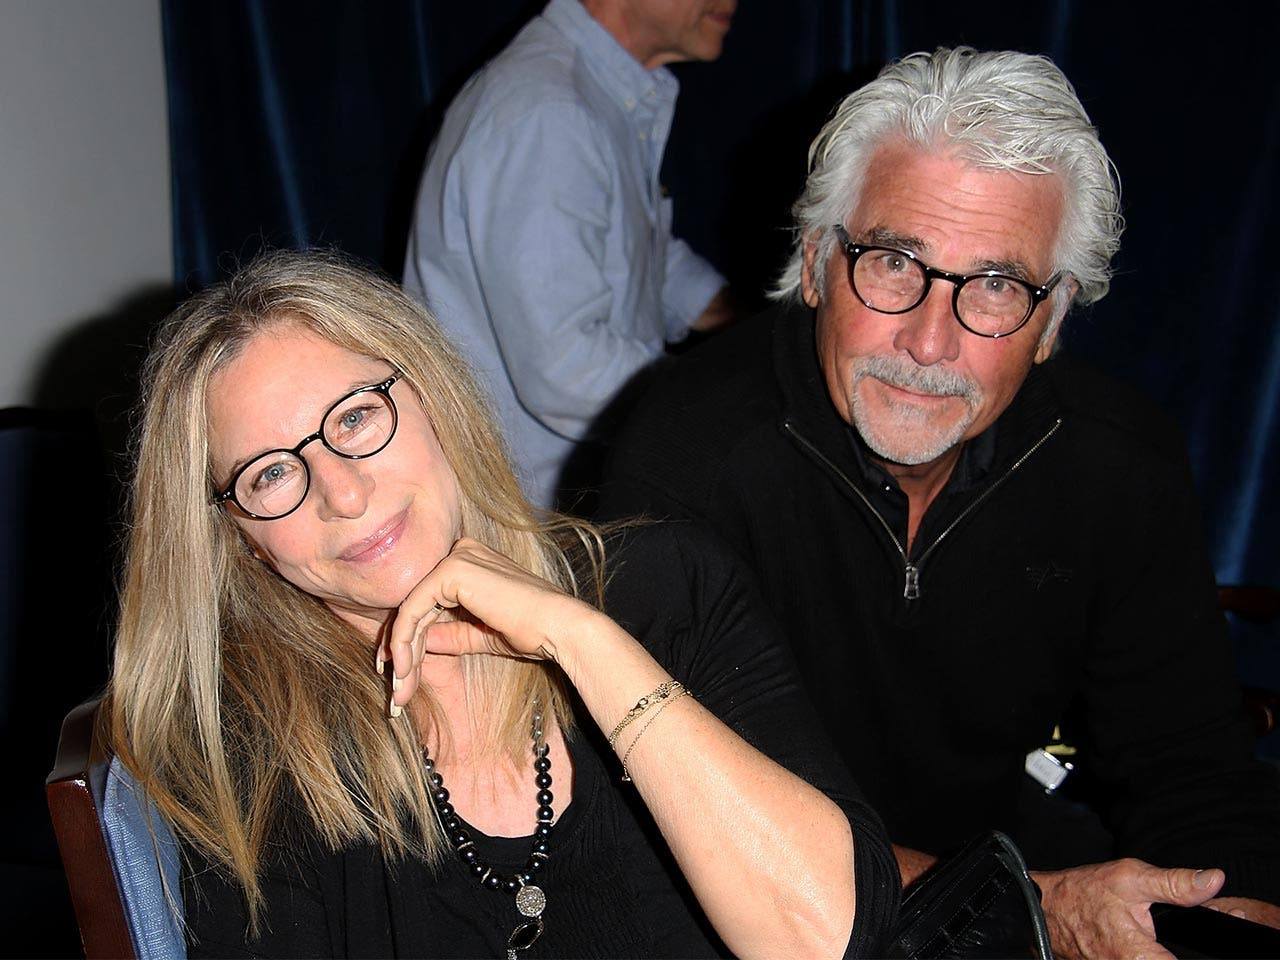 Barbra Streisand and James Brolin | Sonia Moskowitz/Getty Images